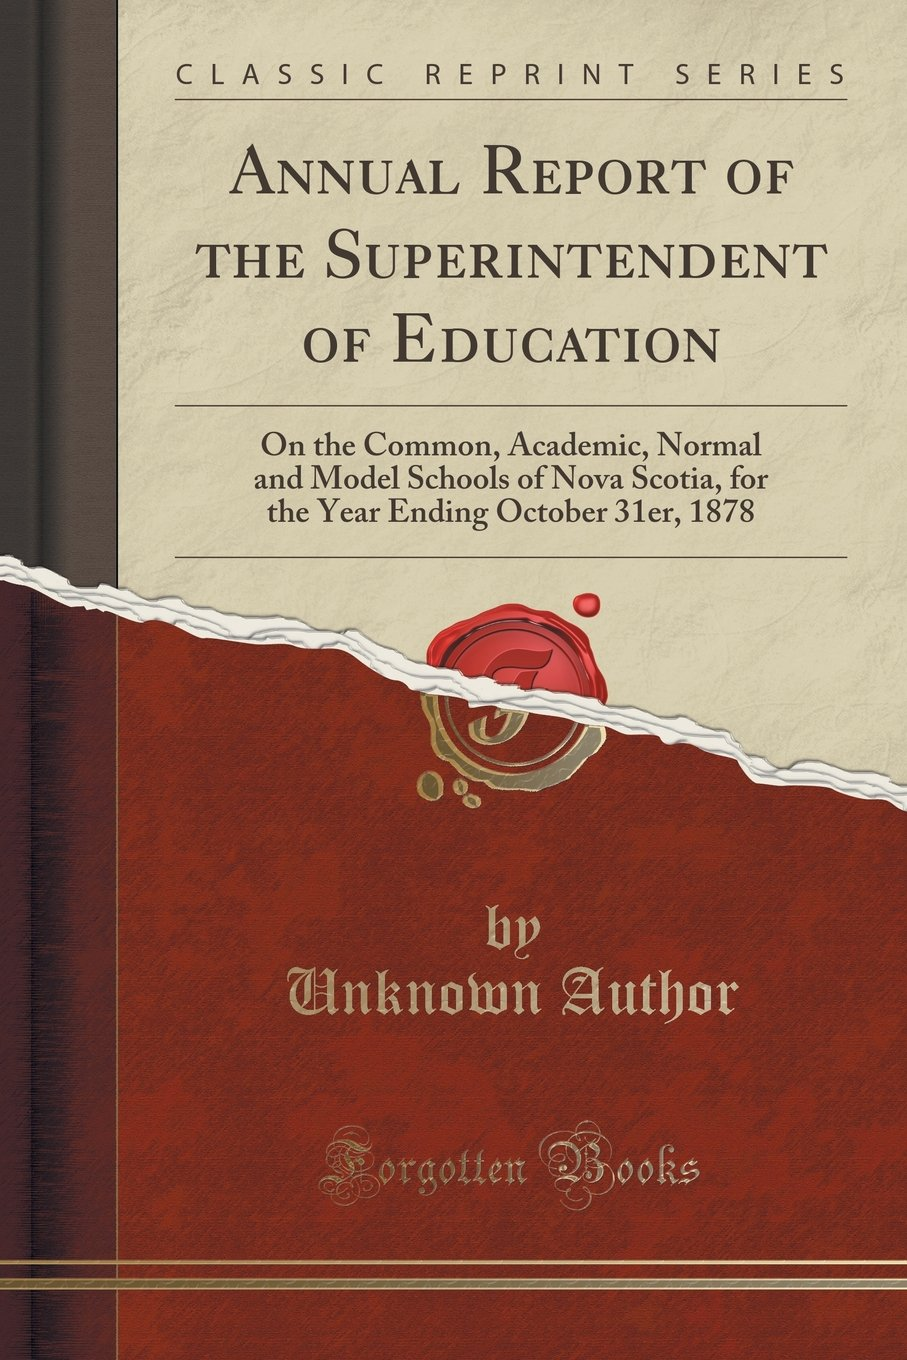 Download Annual Report of the Superintendent of Education: On the Common, Academic, Normal and Model Schools of Nova Scotia, for the Year Ending October 31er, 1878 (Classic Reprint) pdf